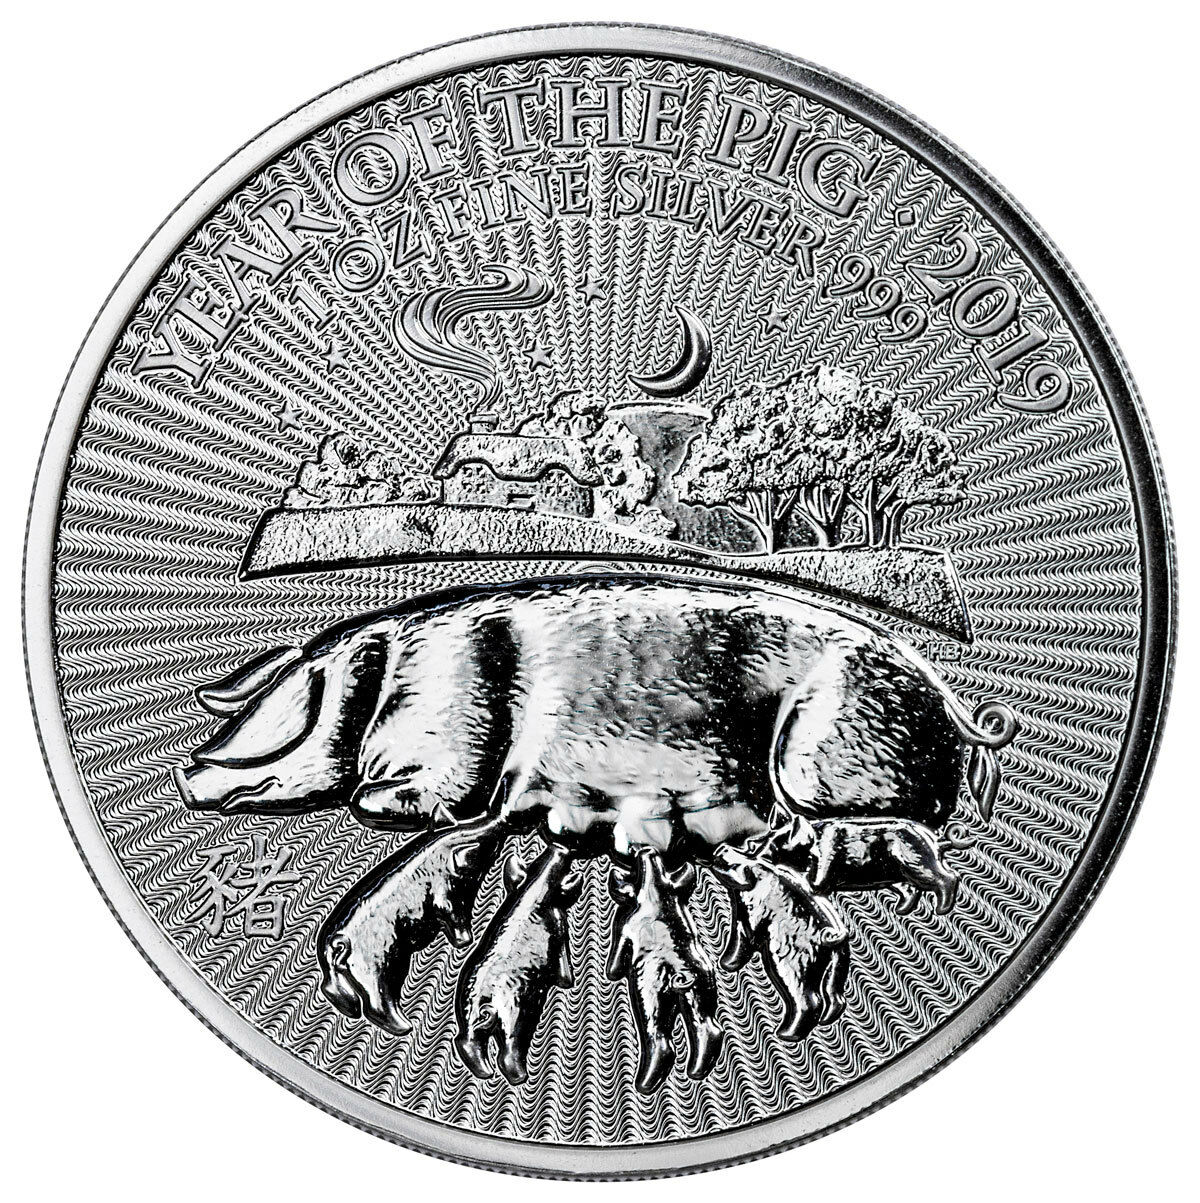 2019 Great Britain Year of the Pig 1 oz Silver Lunar £2 Coin GEM BU SKU55397